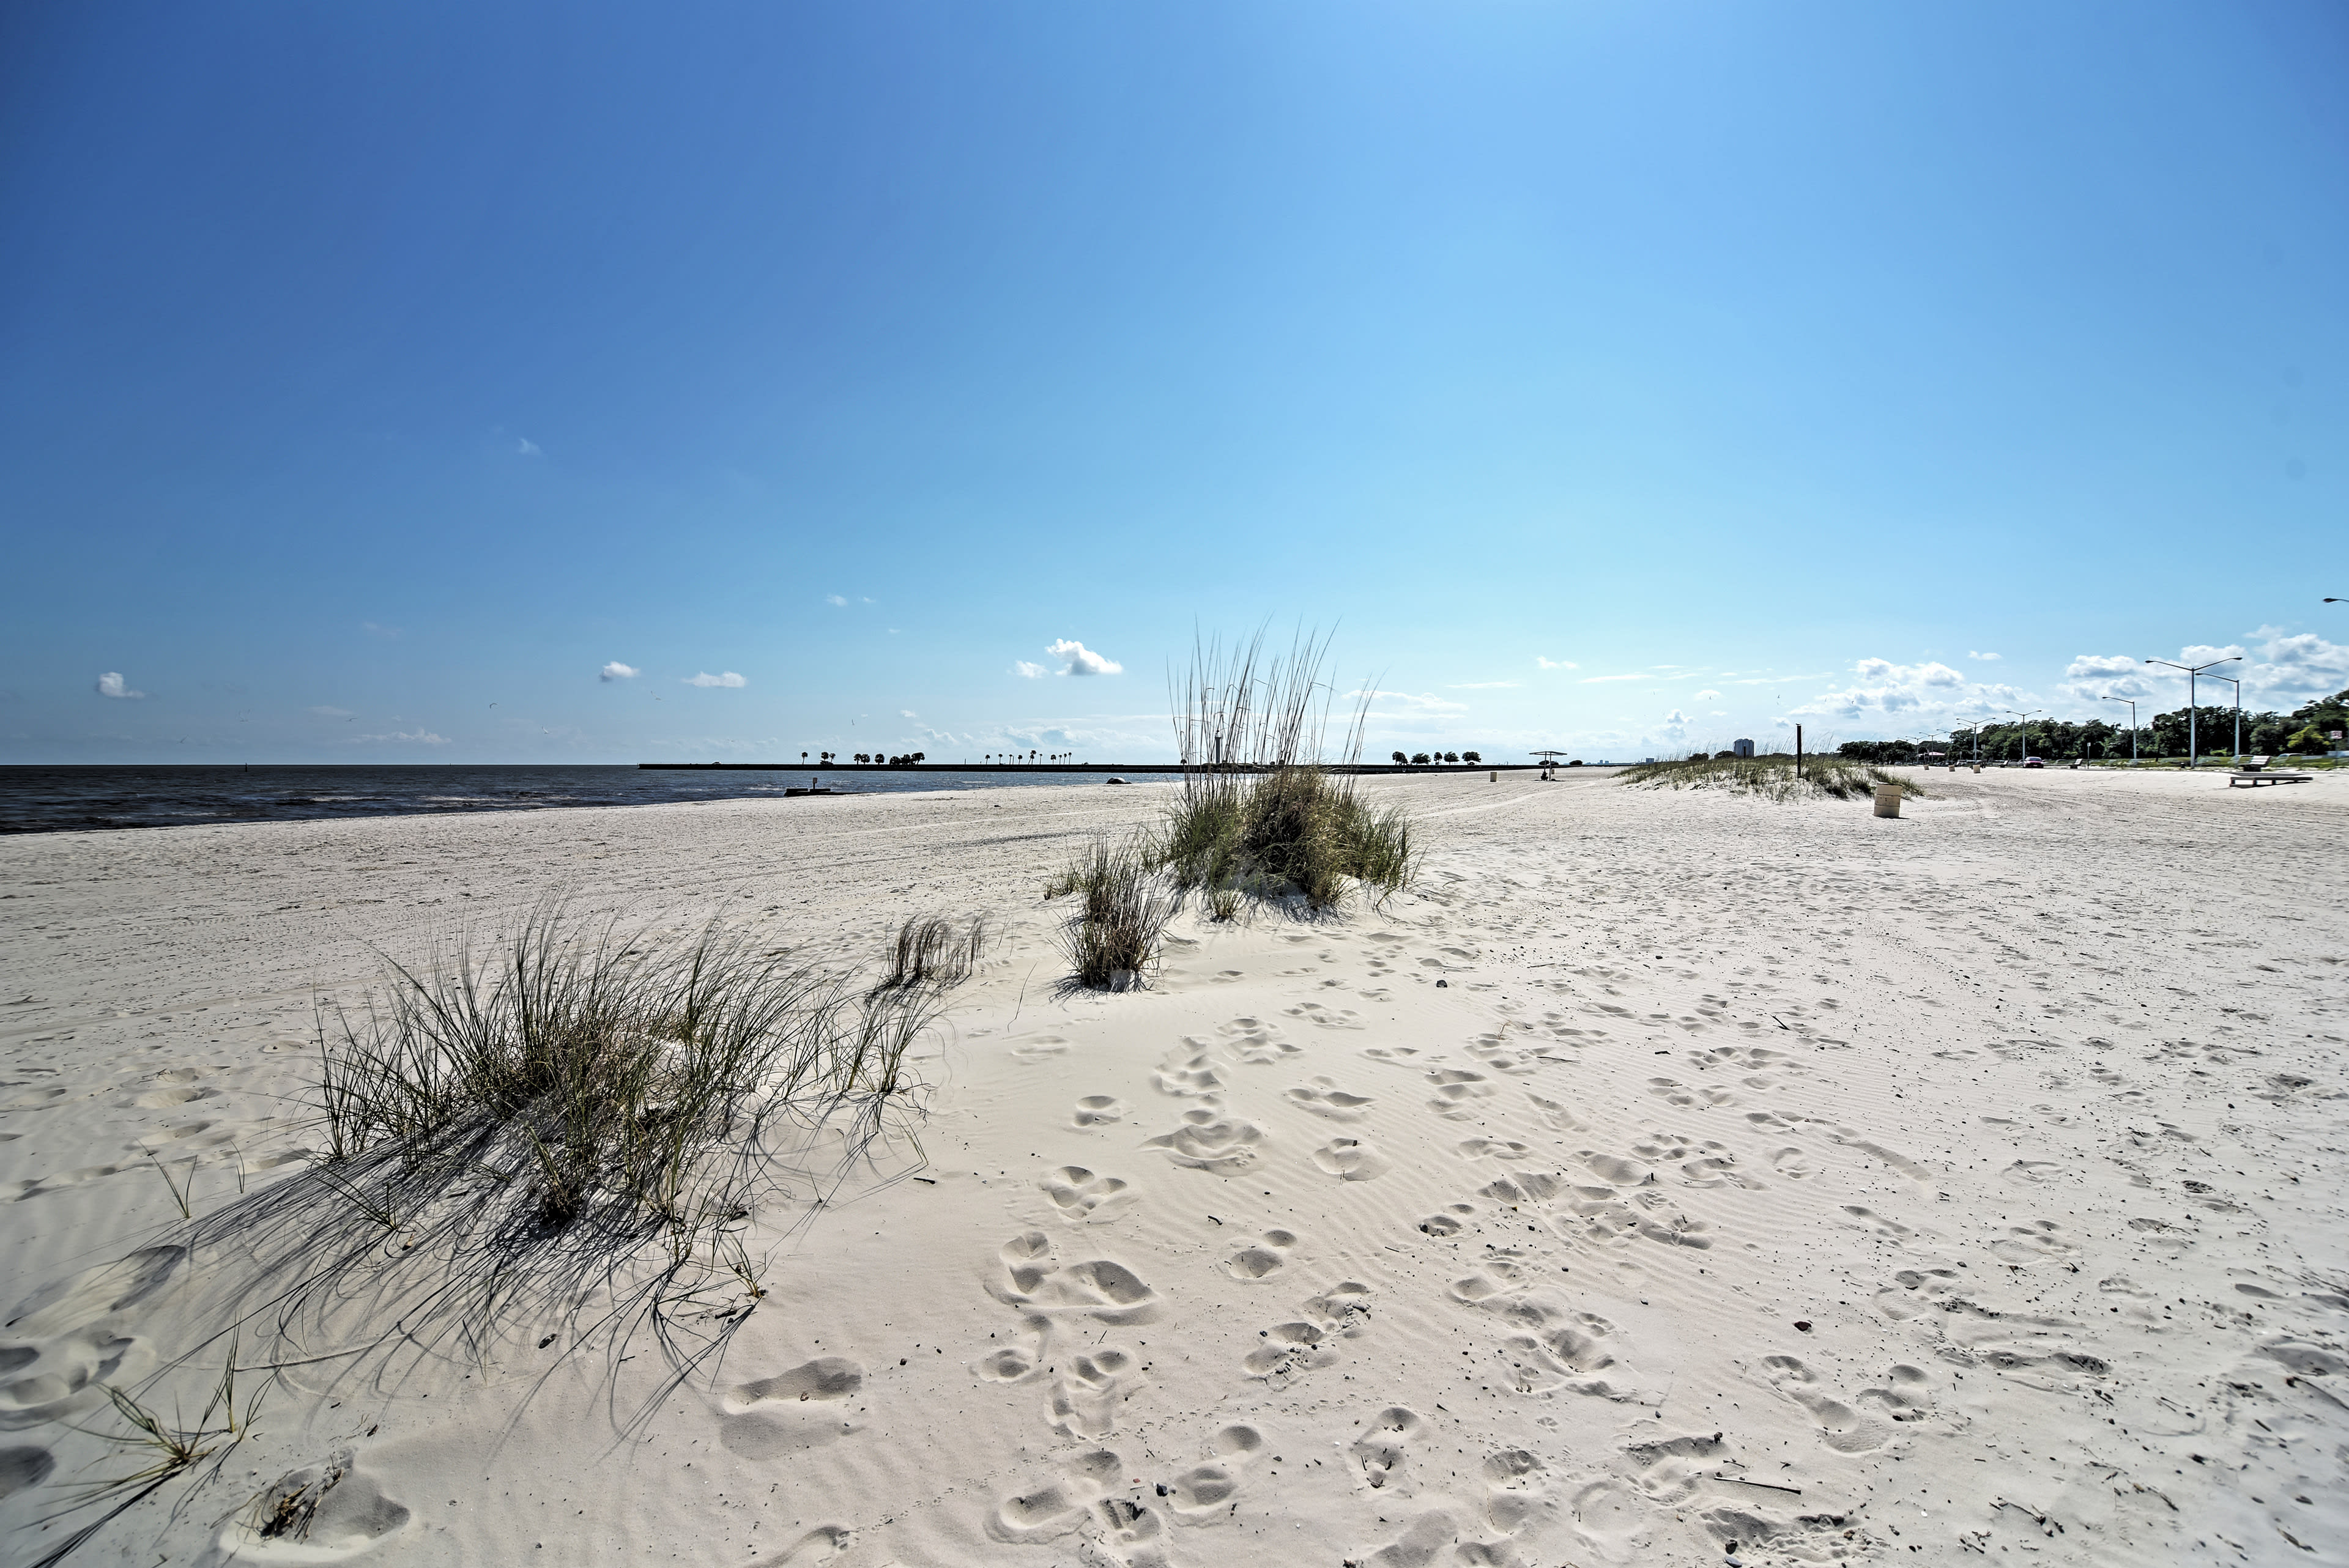 Only minutes from the beach, you'll have sand between your toes in no time!